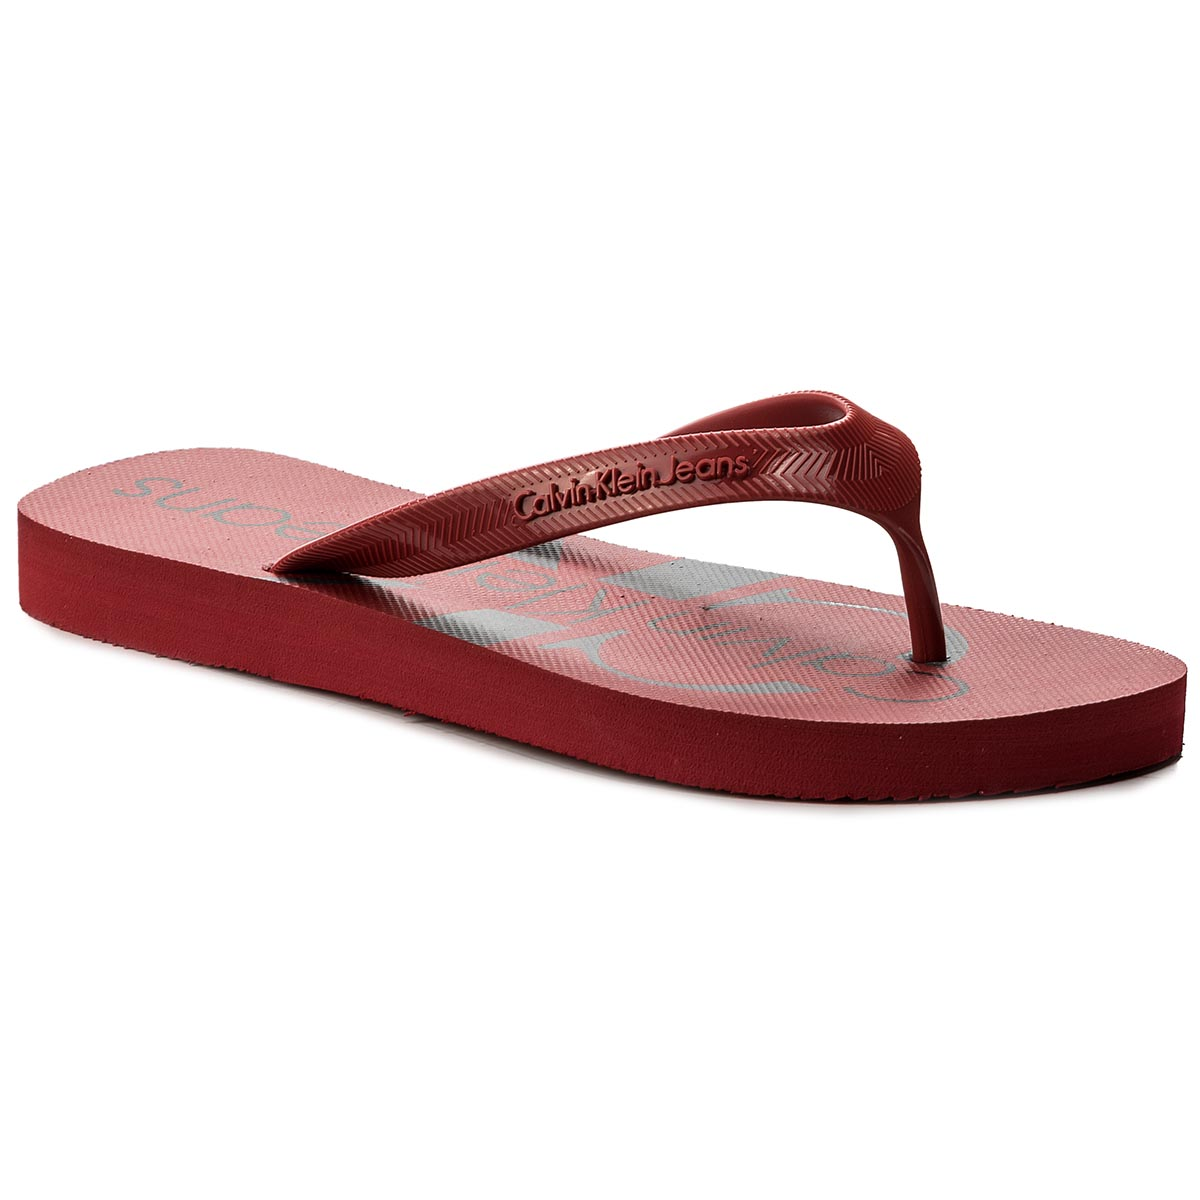 Flip flop CALVIN KLEIN JEANS - Dash Jelly S0063 Dark Red